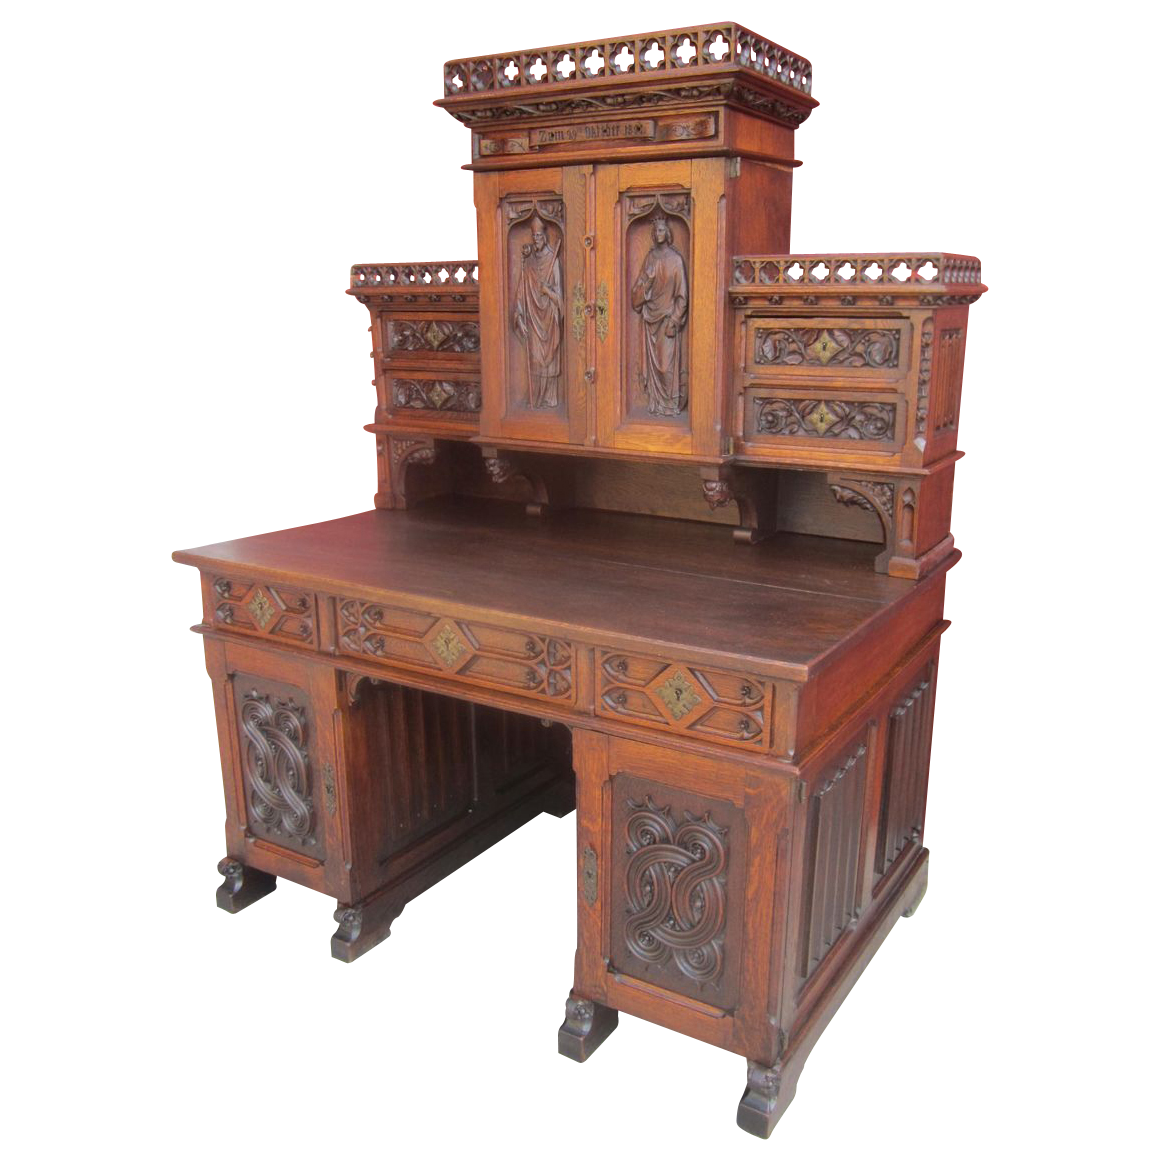 French antique gothic desk antique furniture sold on ruby lane for Old furniture